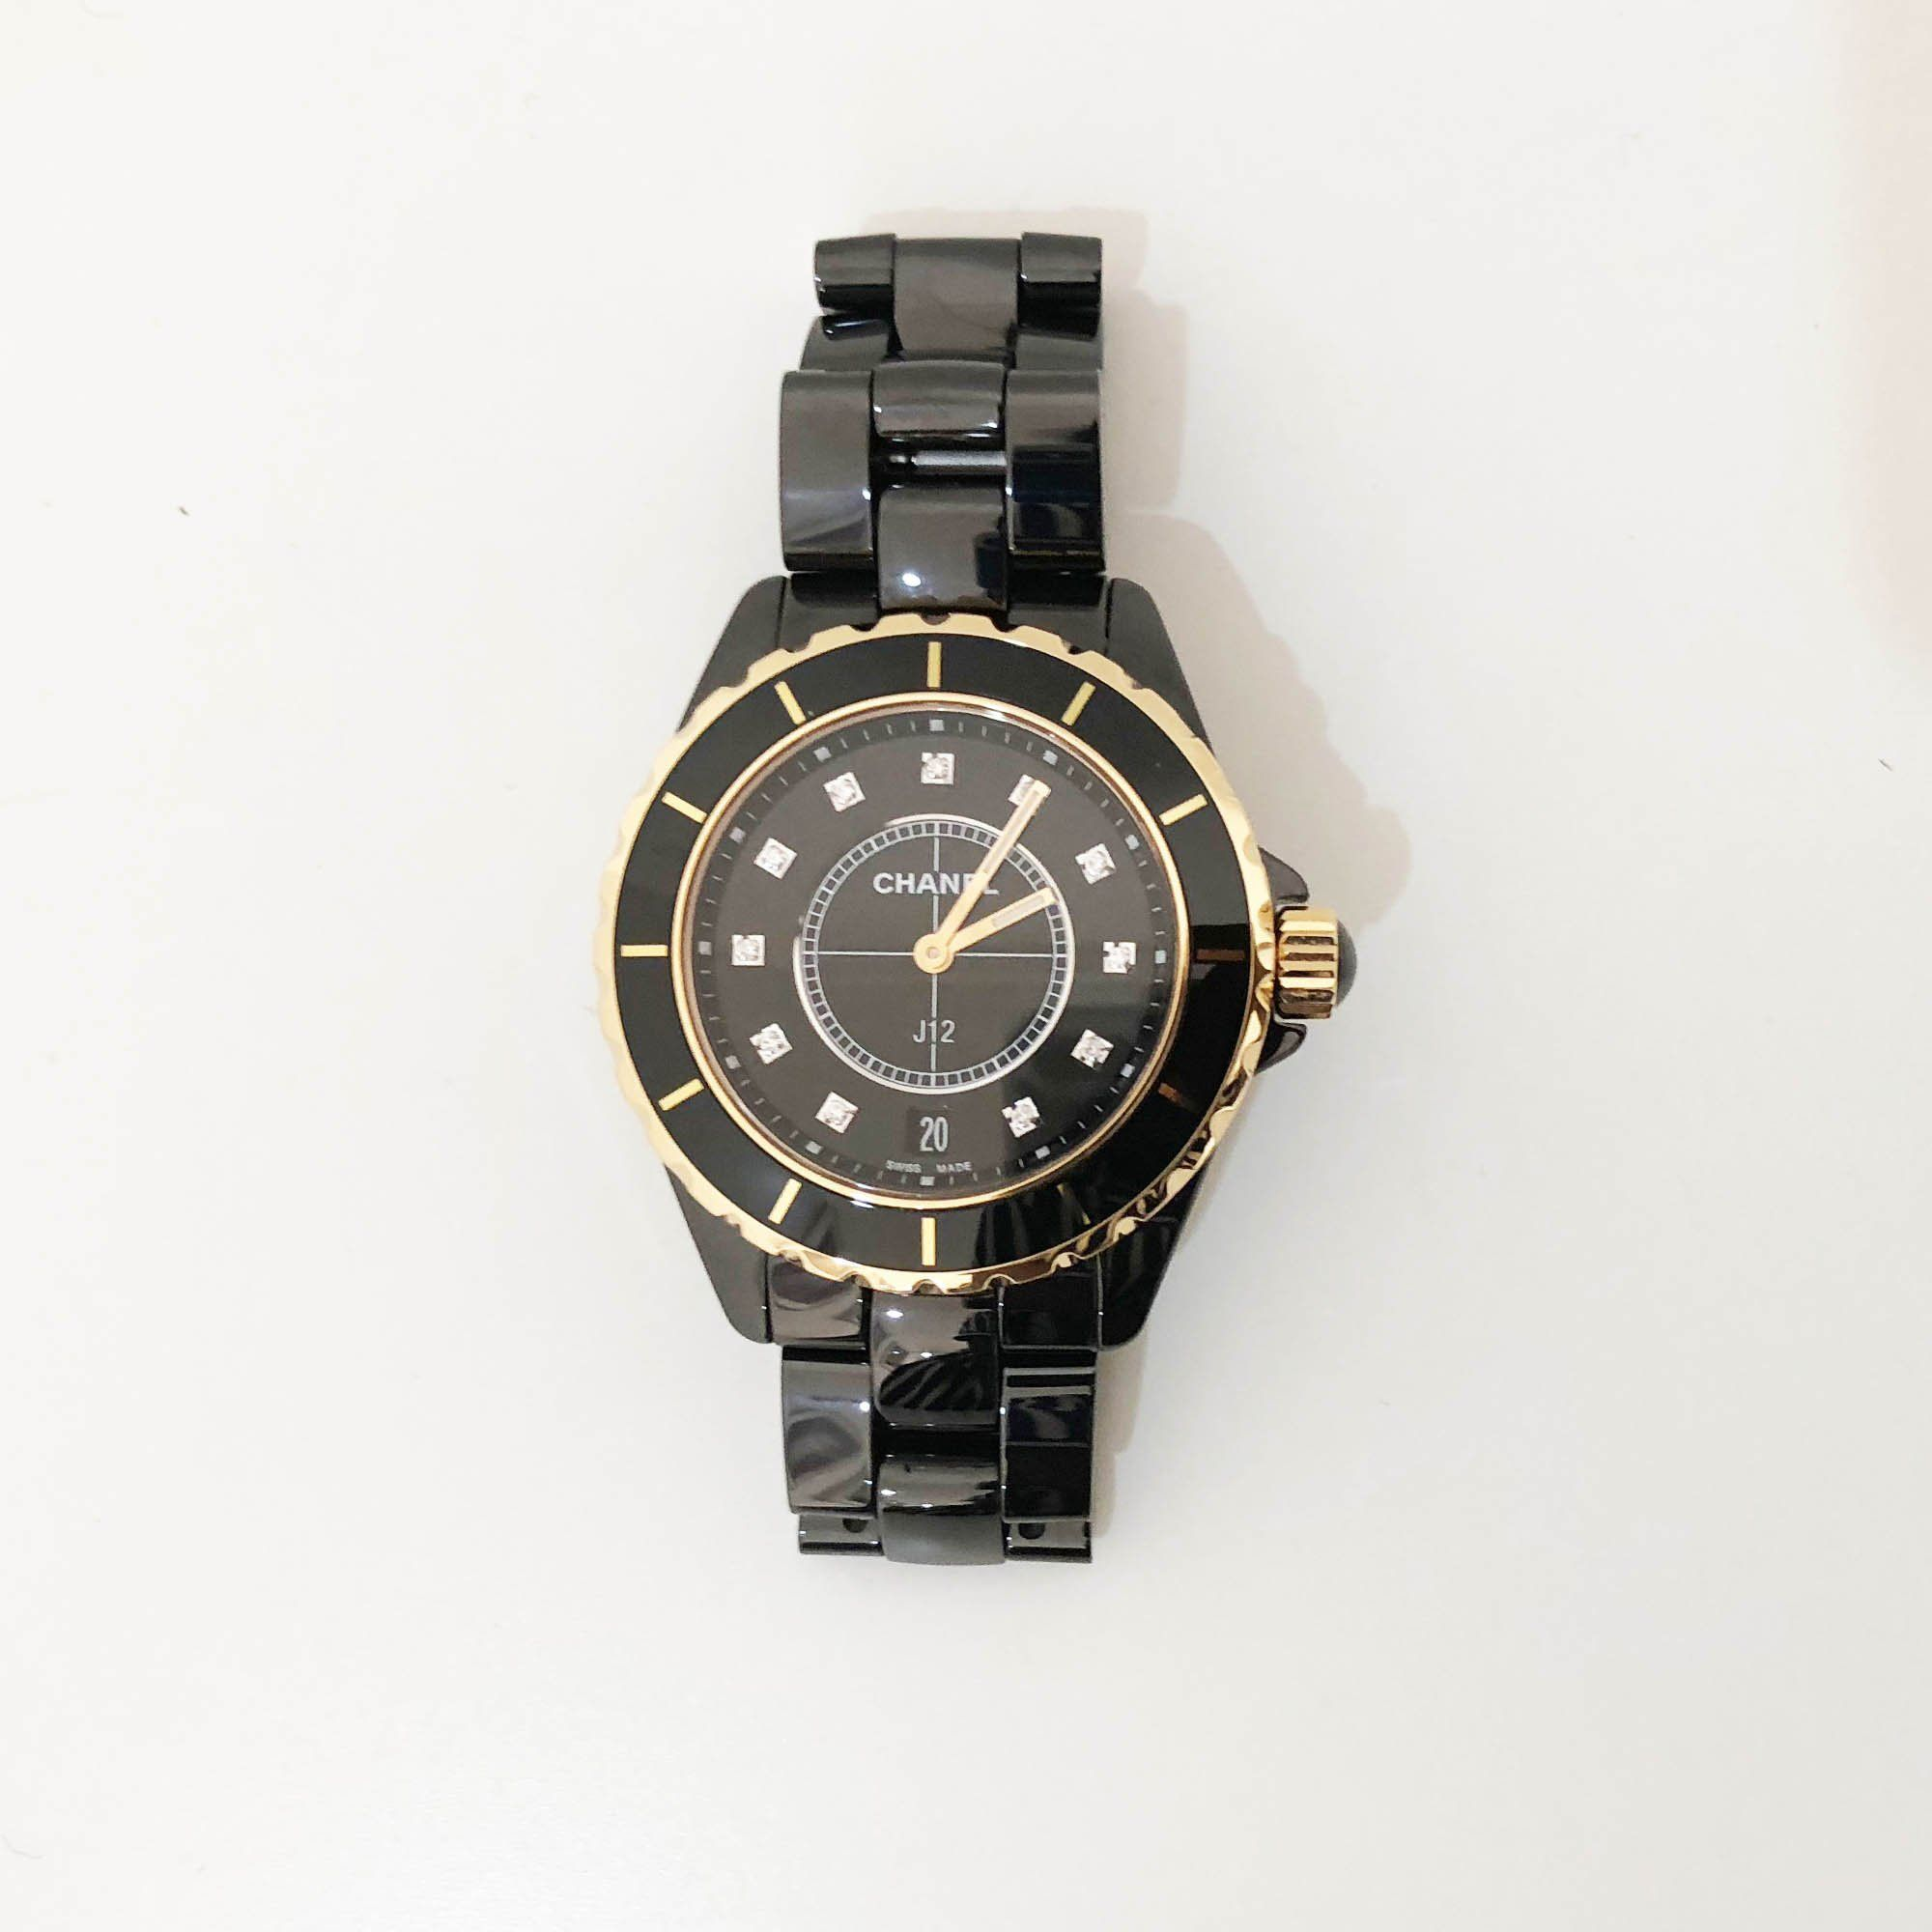 Chanel Ceramic 12 Diamond Marker 38mm J12 Automatic Watch Black